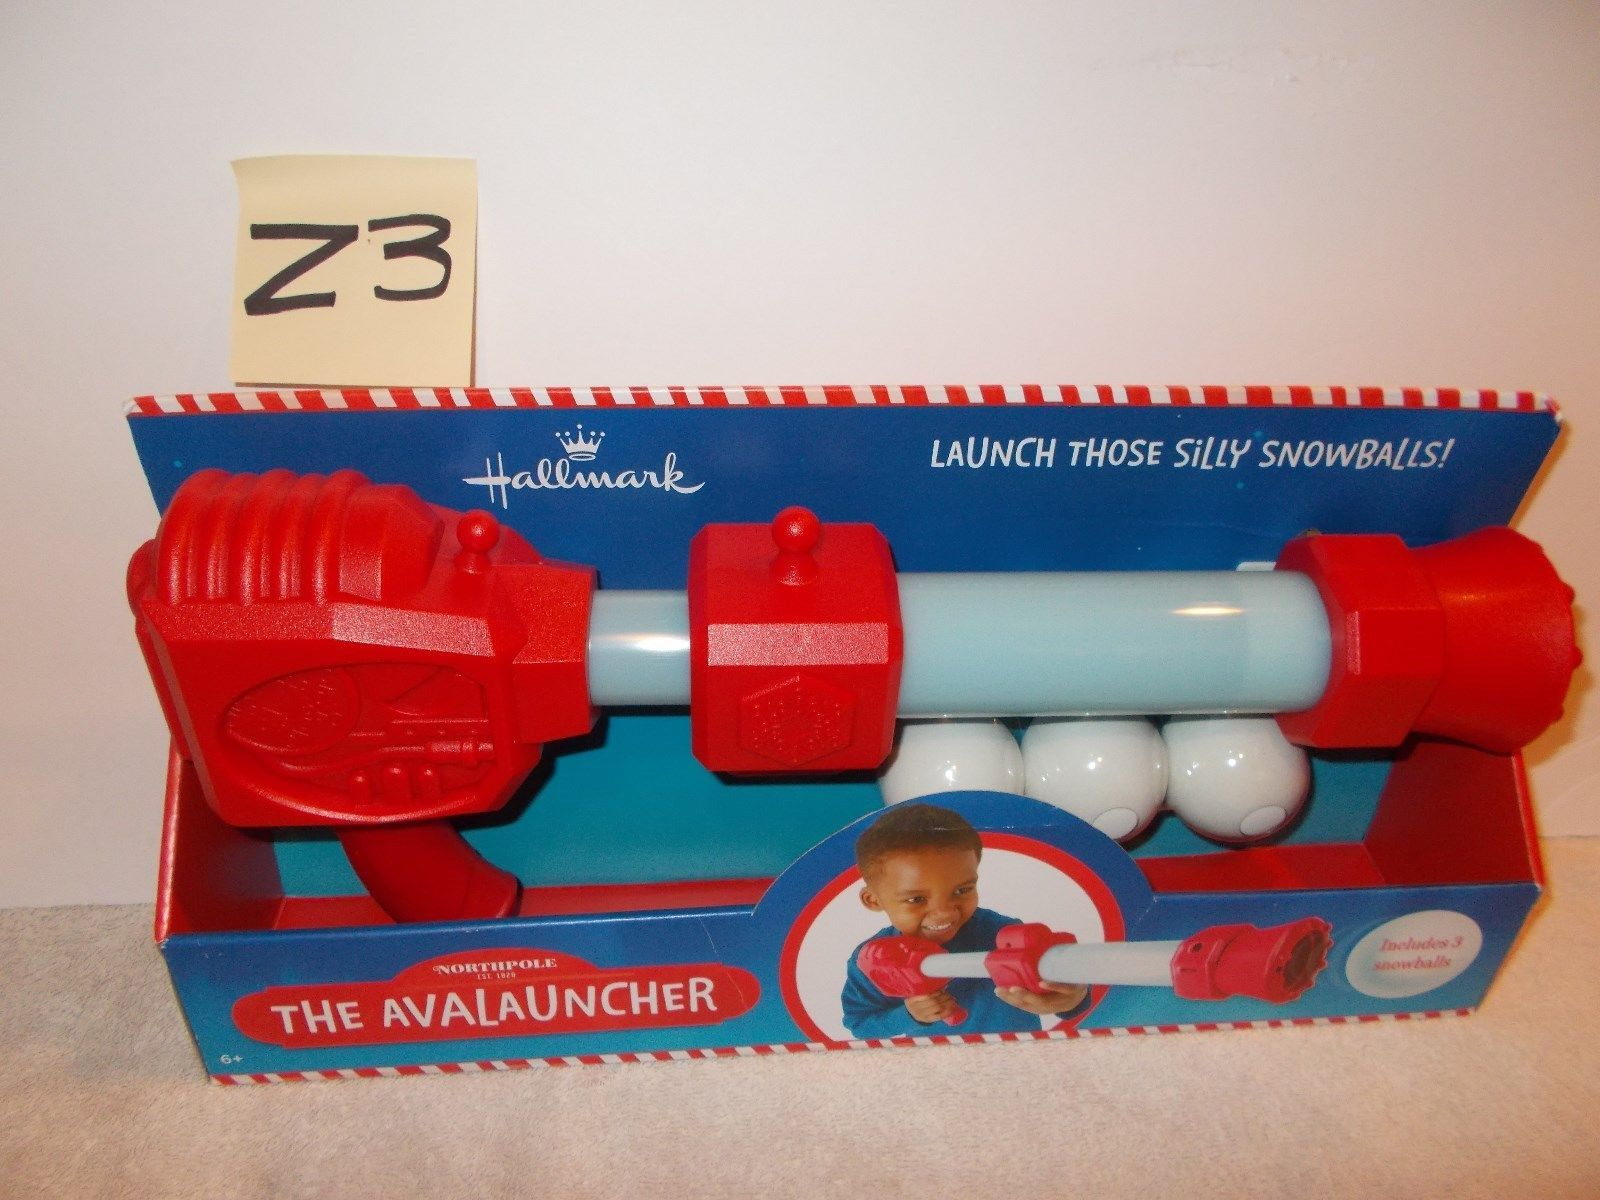 The North Pole Snowball Indoor Avalauncher Includes 3 Snowballs